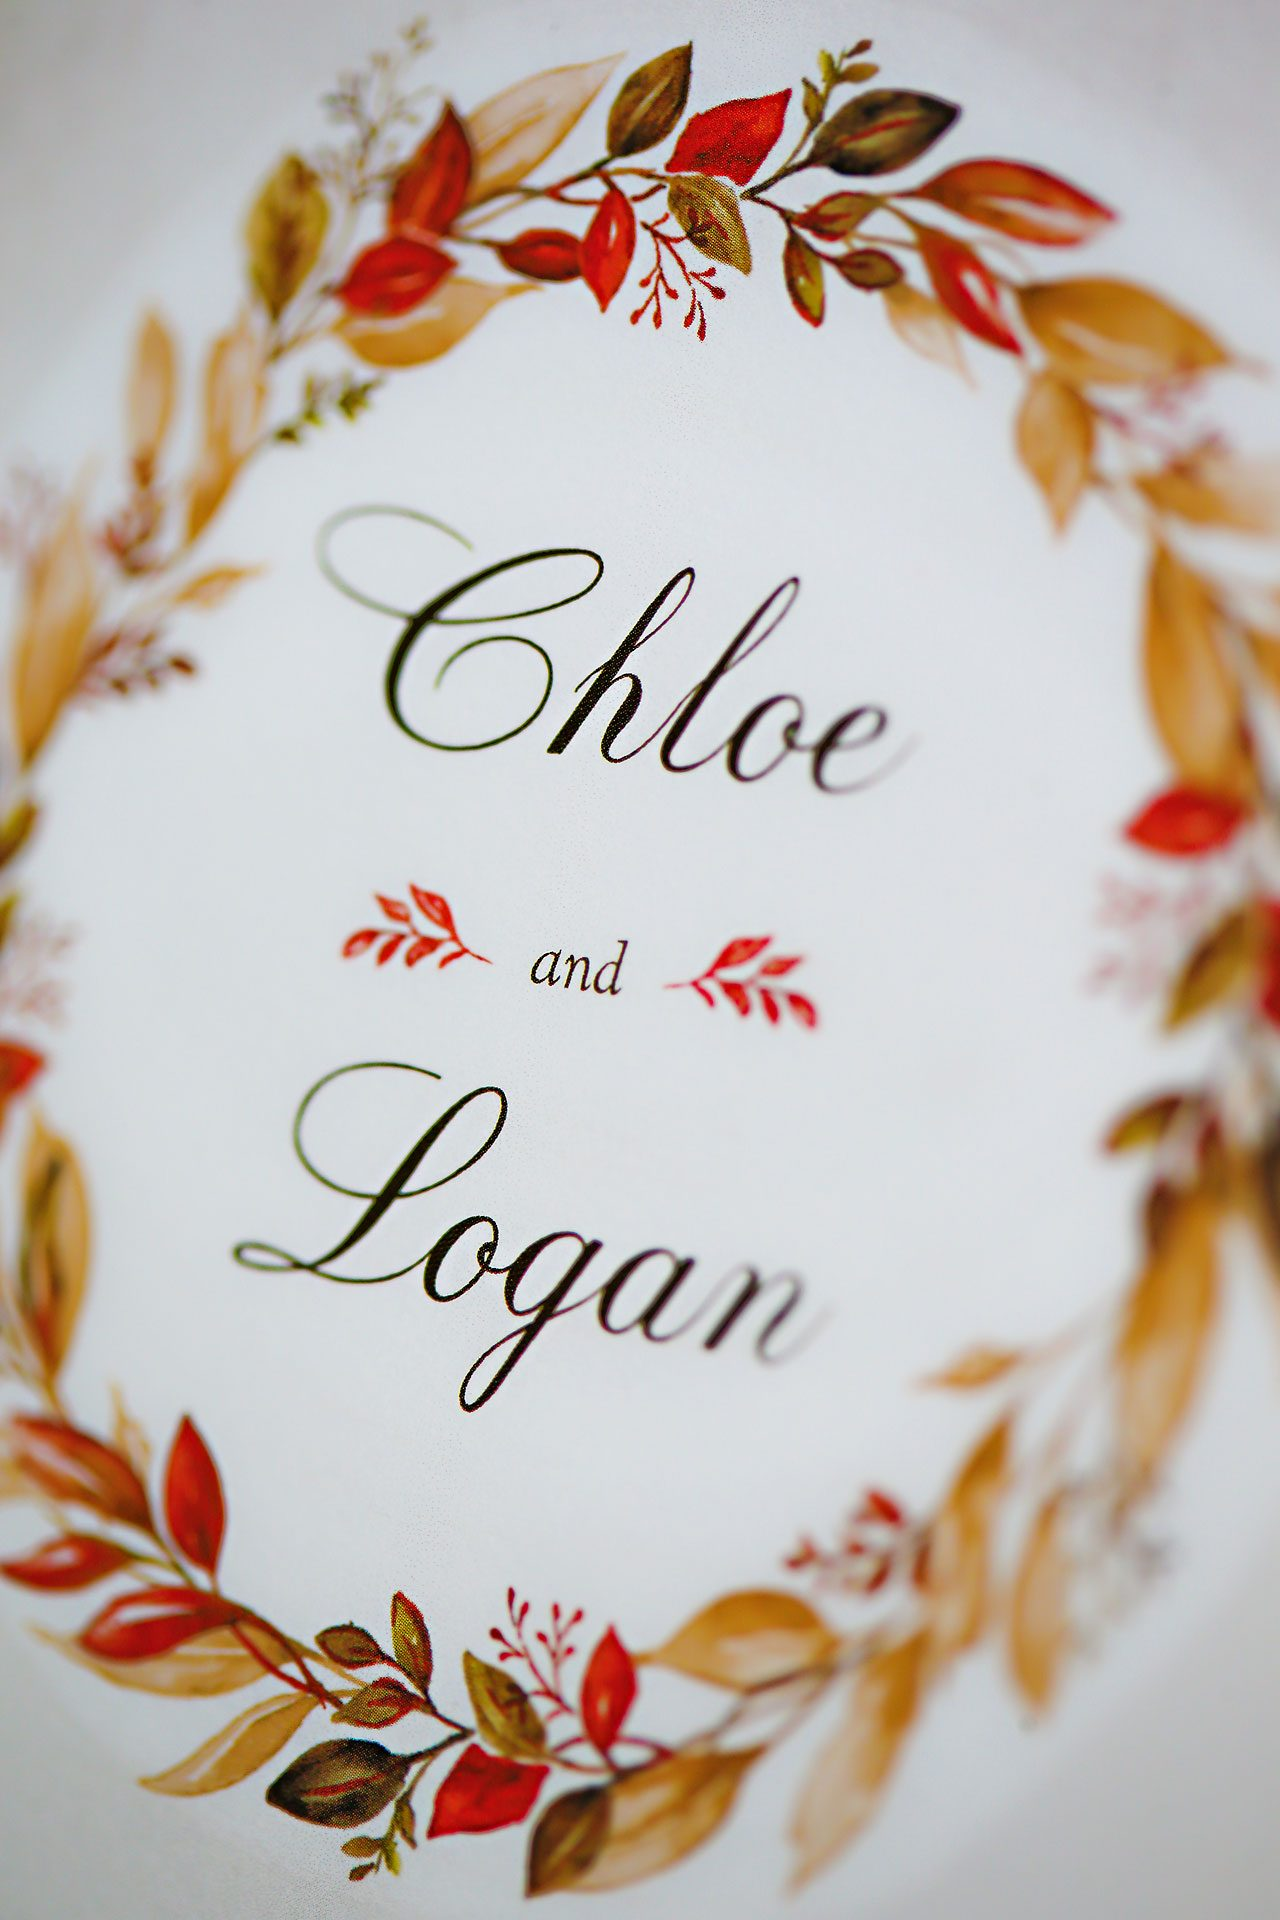 Chloe Logan Plum Creek Wedding 003